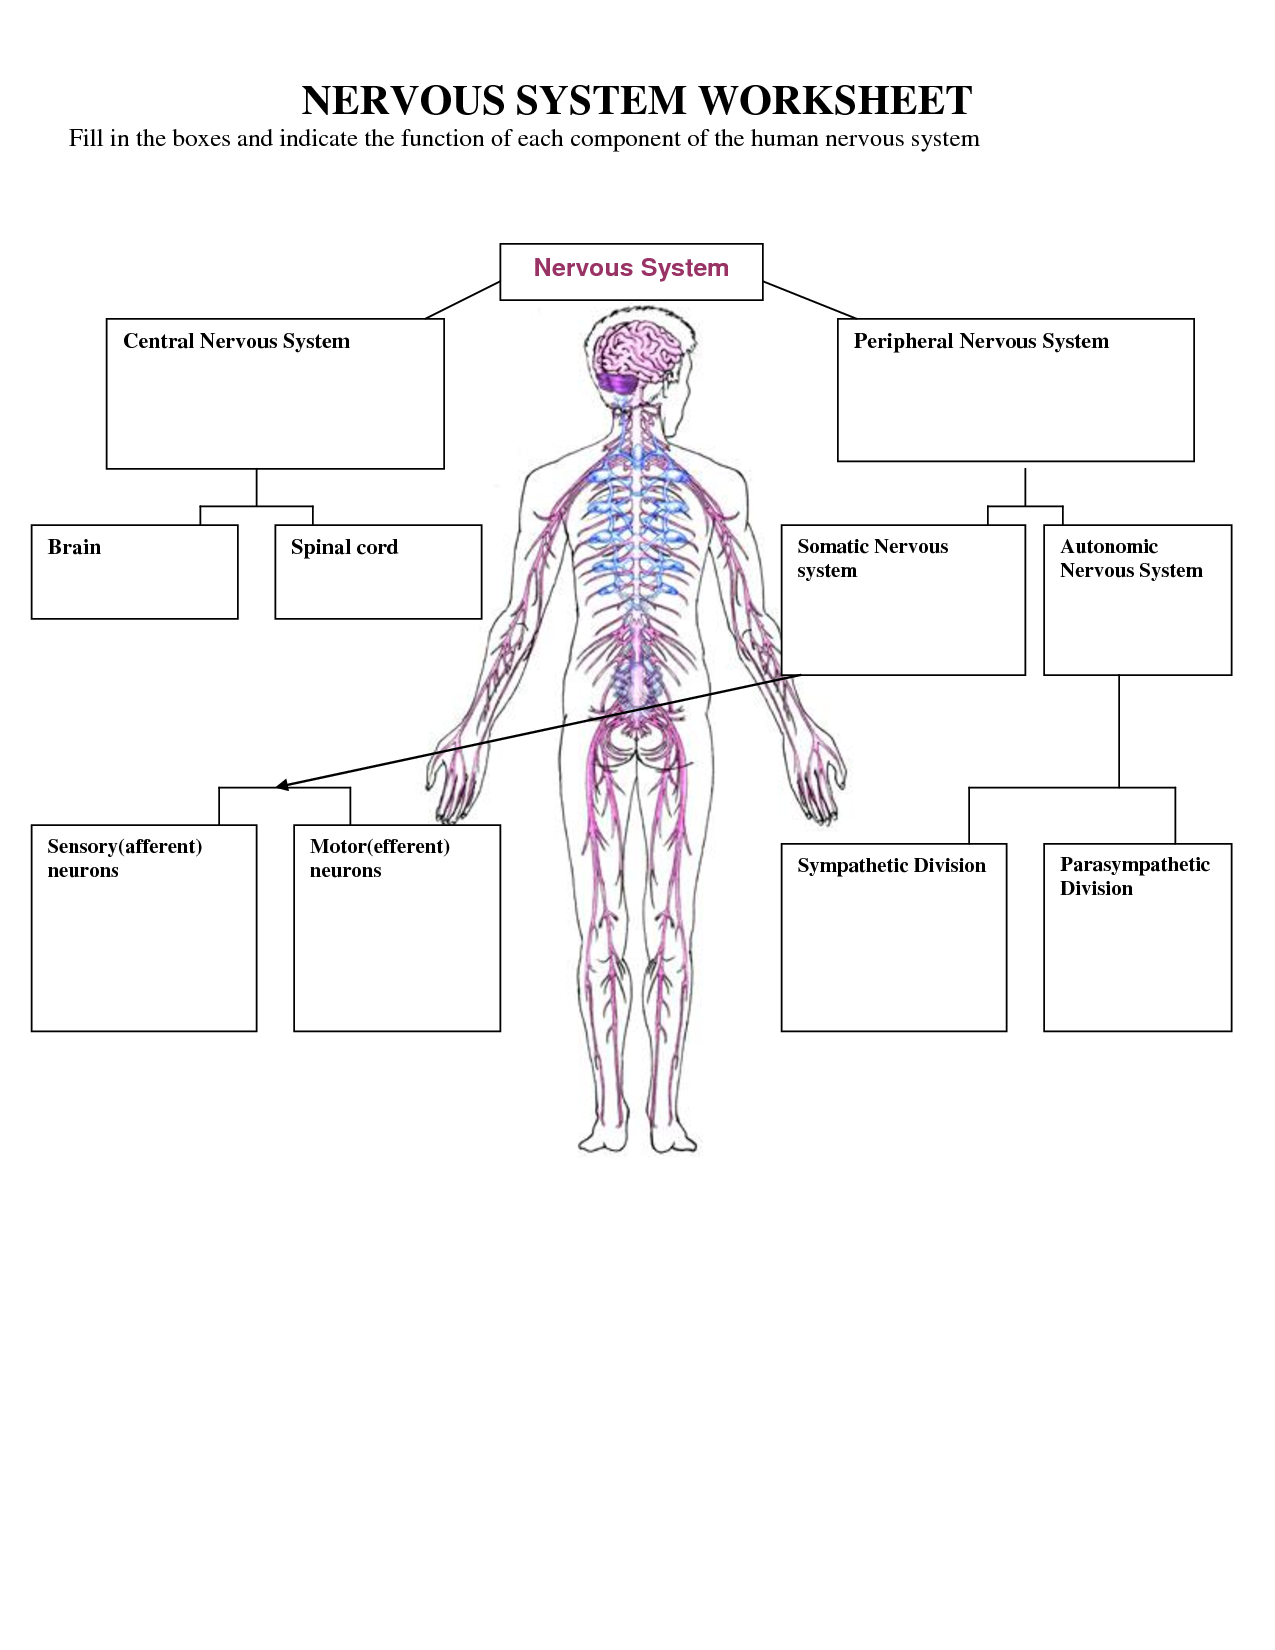 worksheet Nervous System Worksheets nervous system worksheets places to visit pinterest worksheets